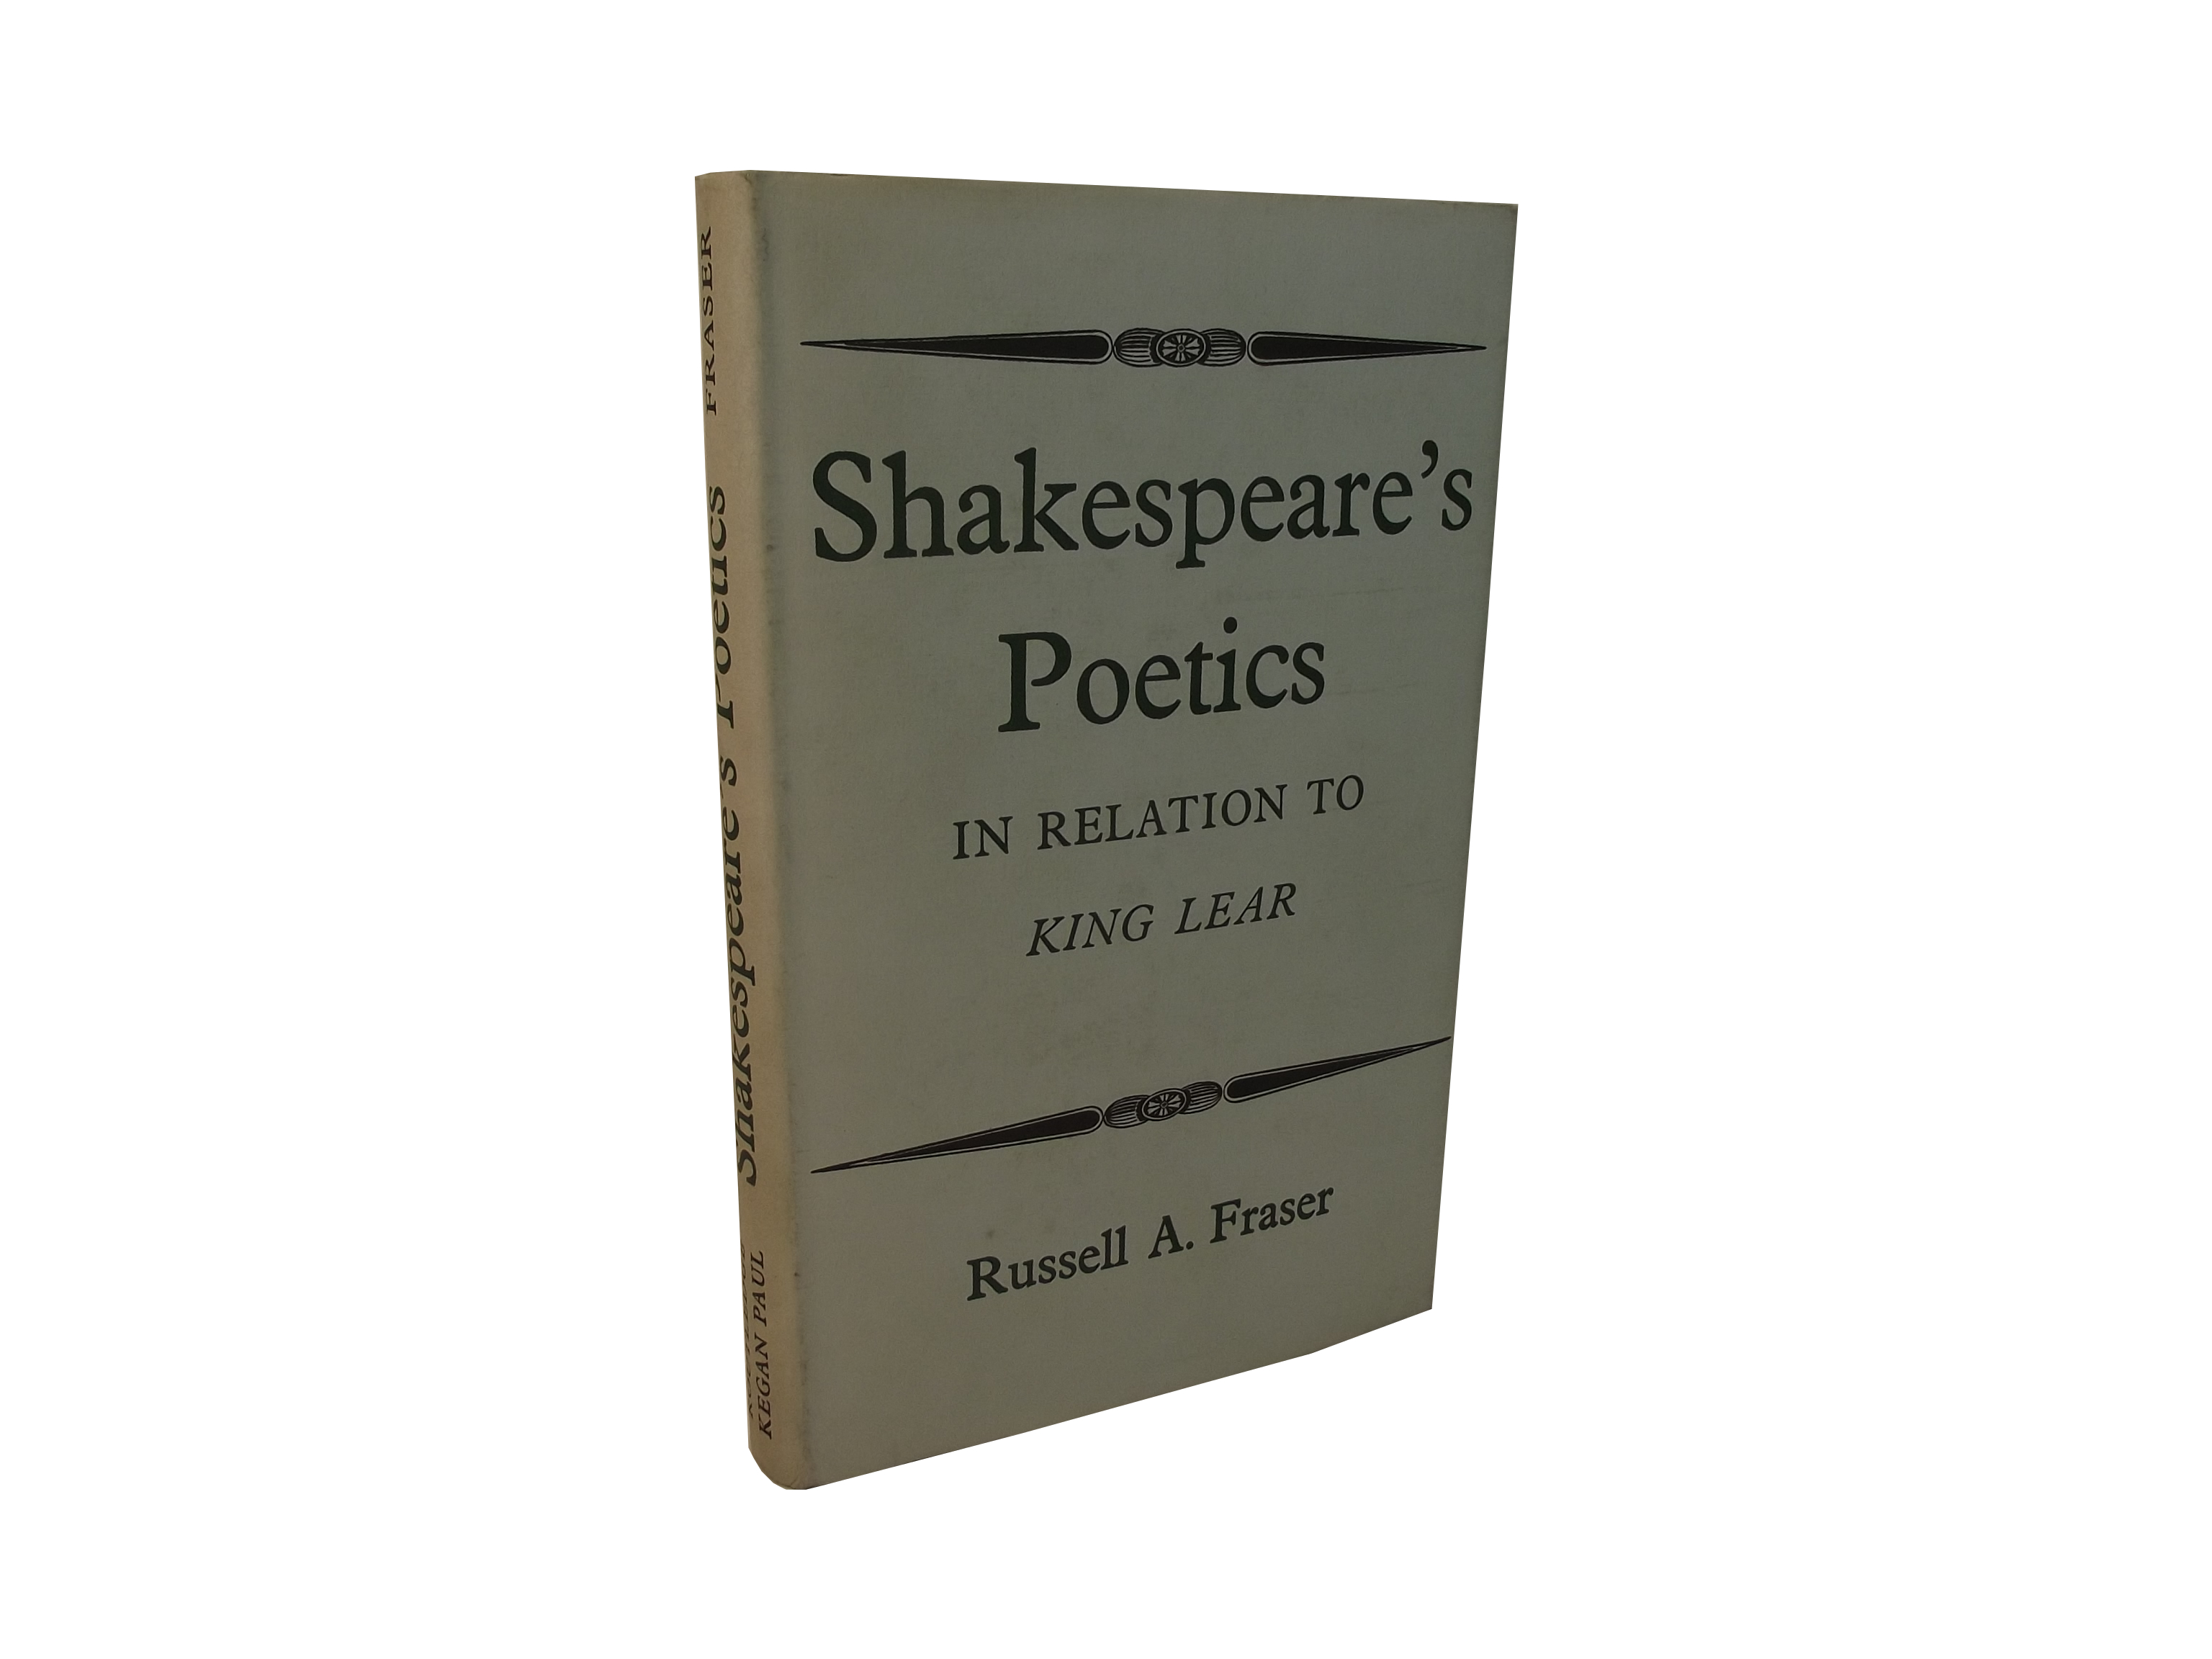 Shakespeare's Poetics in Relation to King Lear